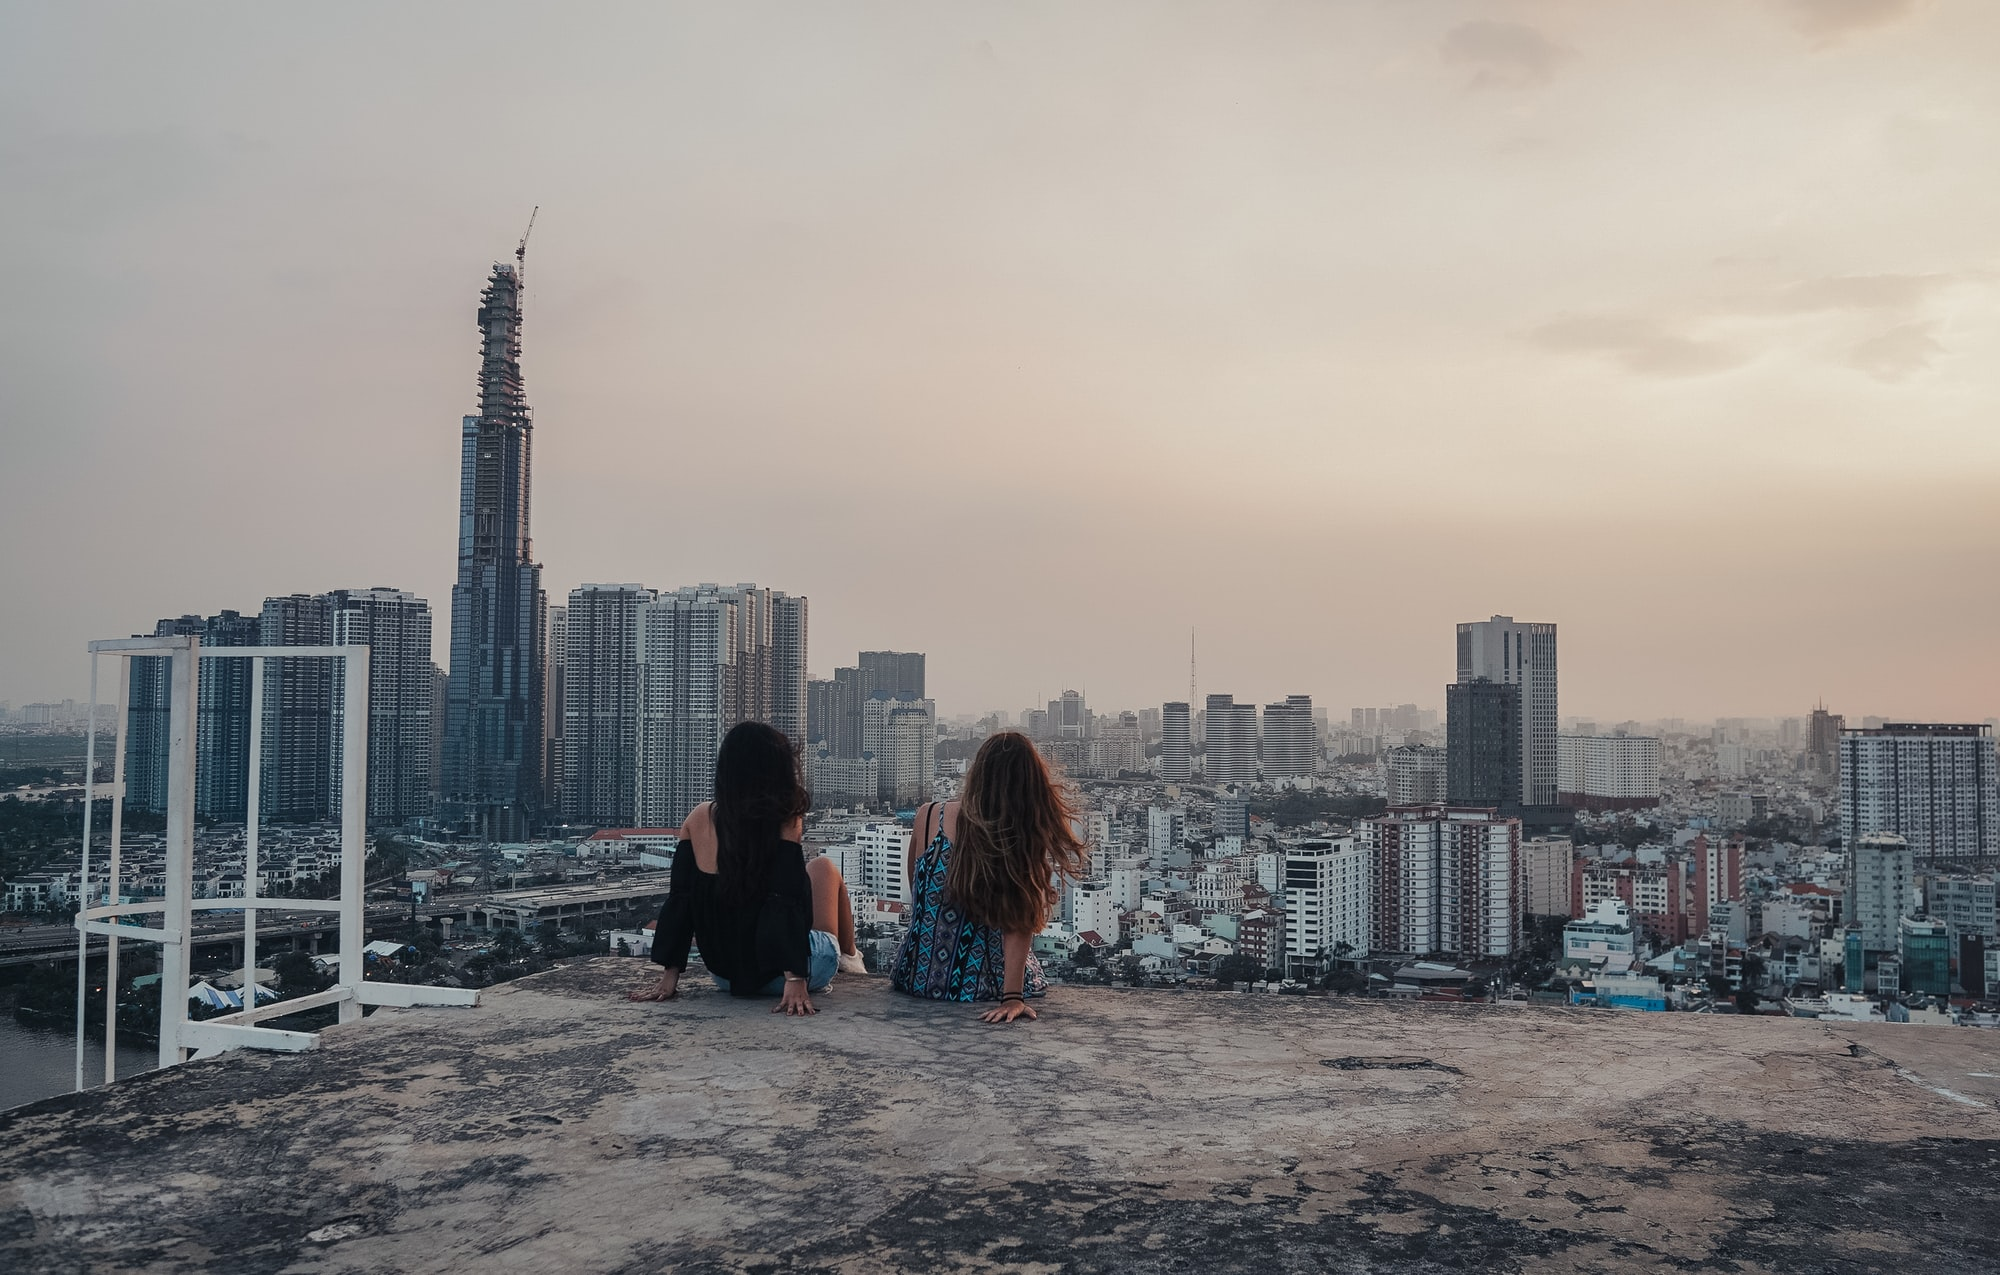 What would a city designed by women be like?